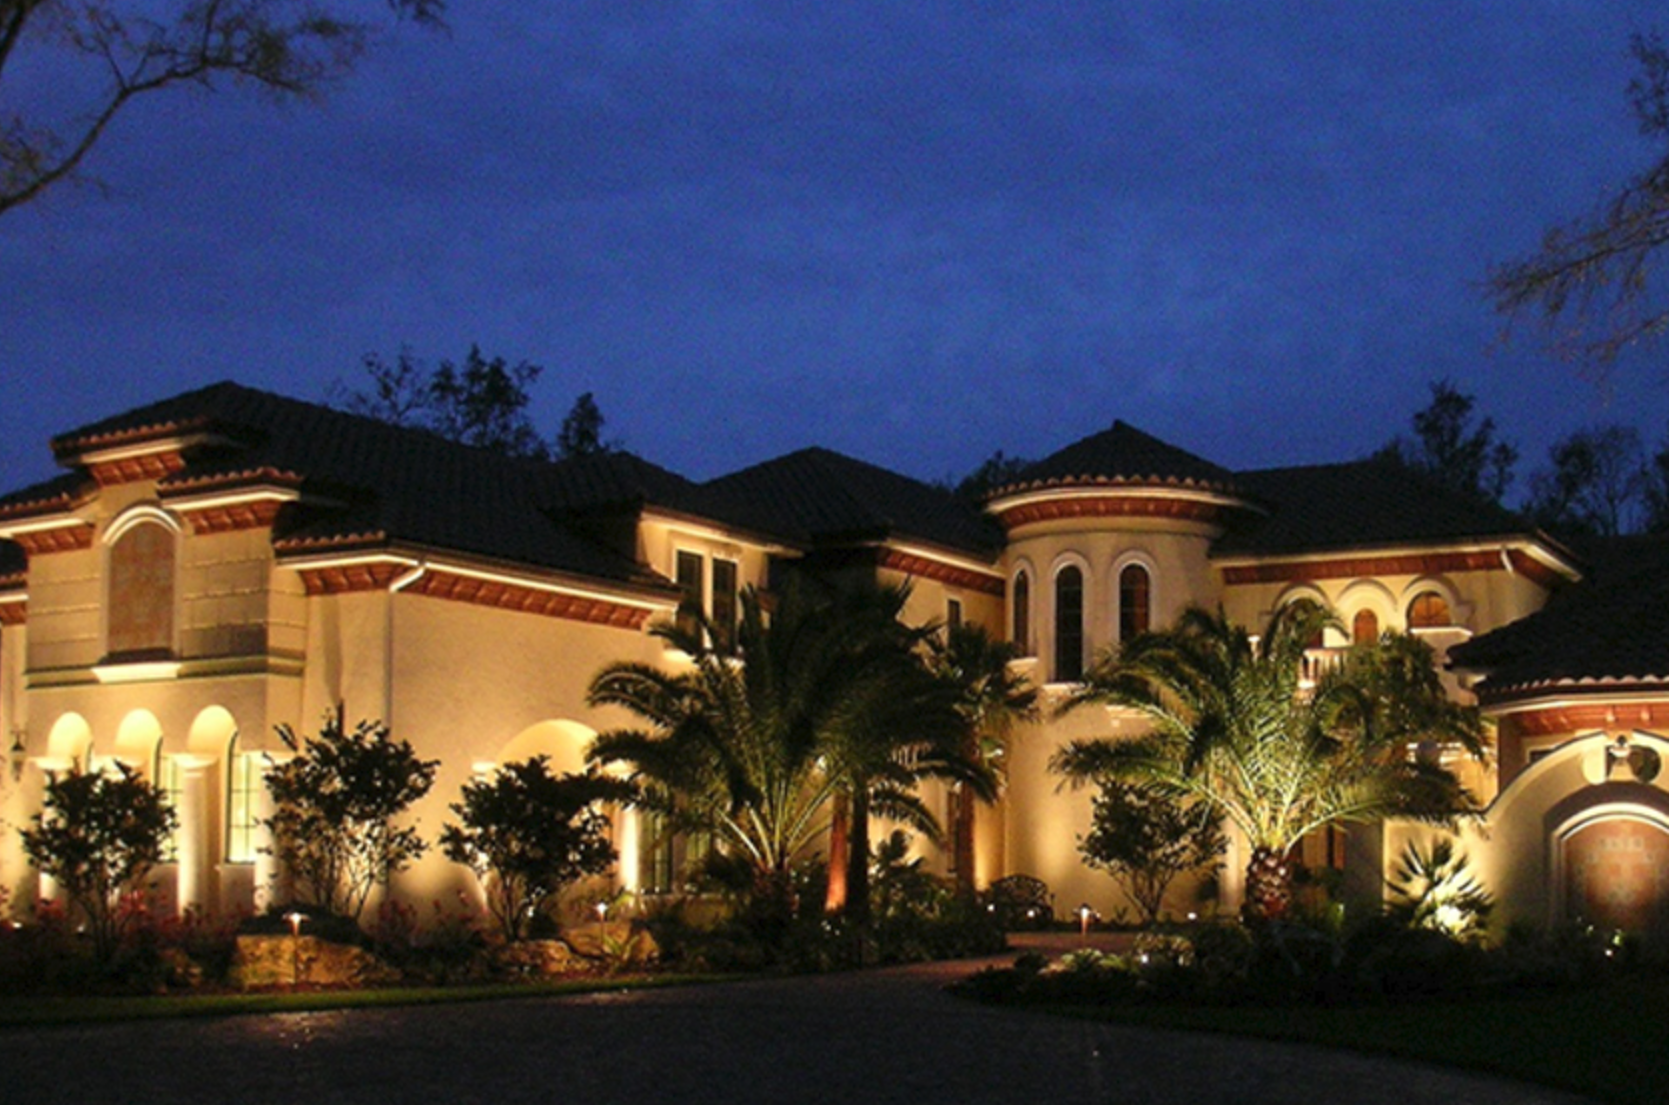 Delta Outdoor Lighting Has The Most Professional Options For